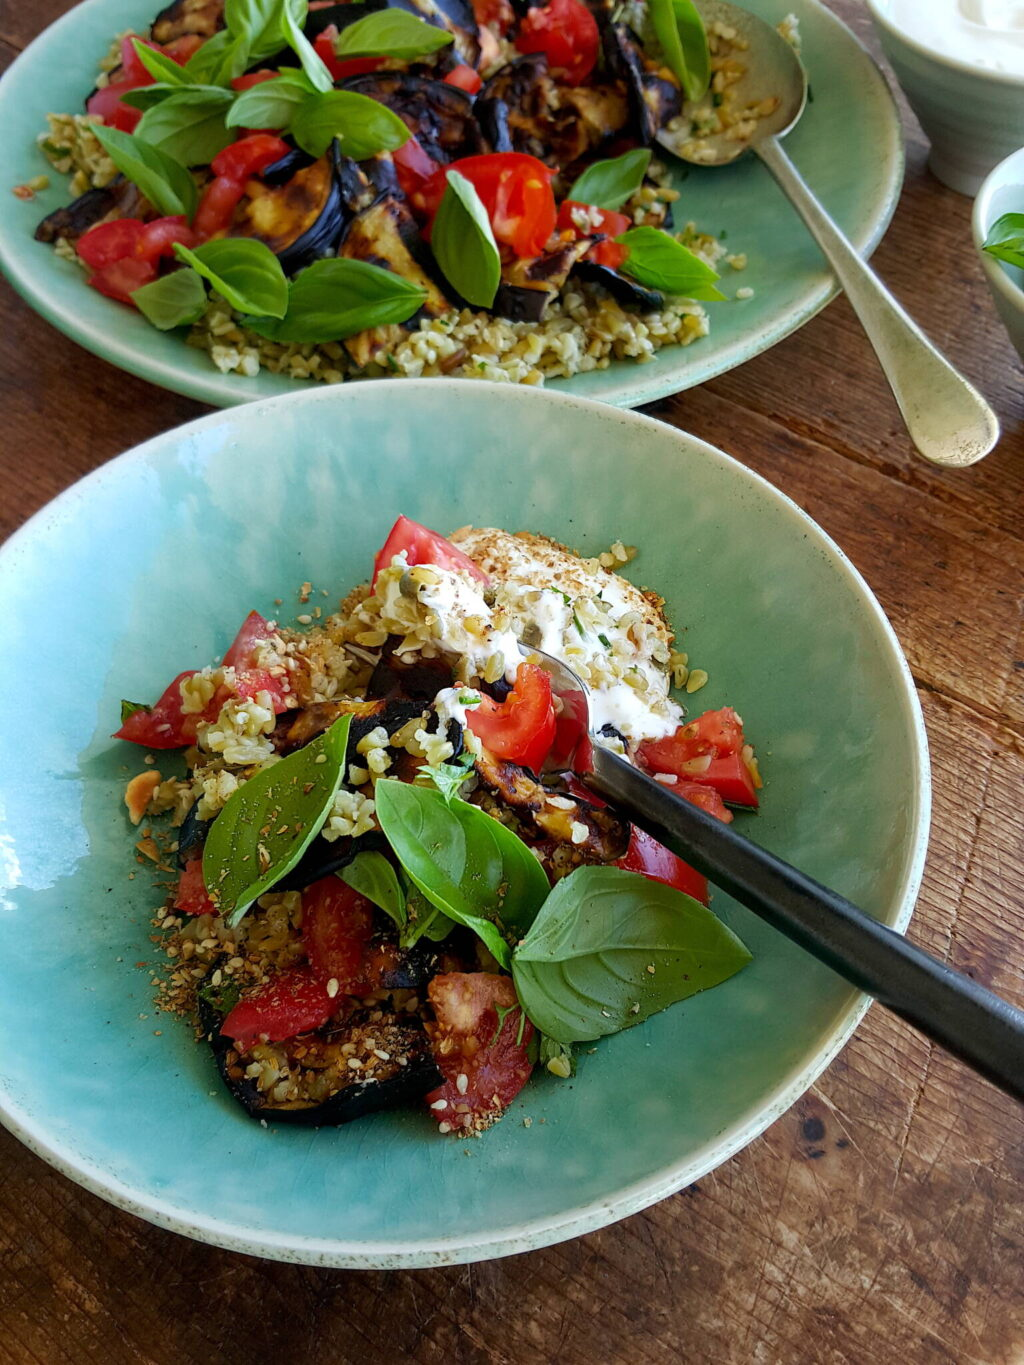 Barbecued Eggplant with Freekeh